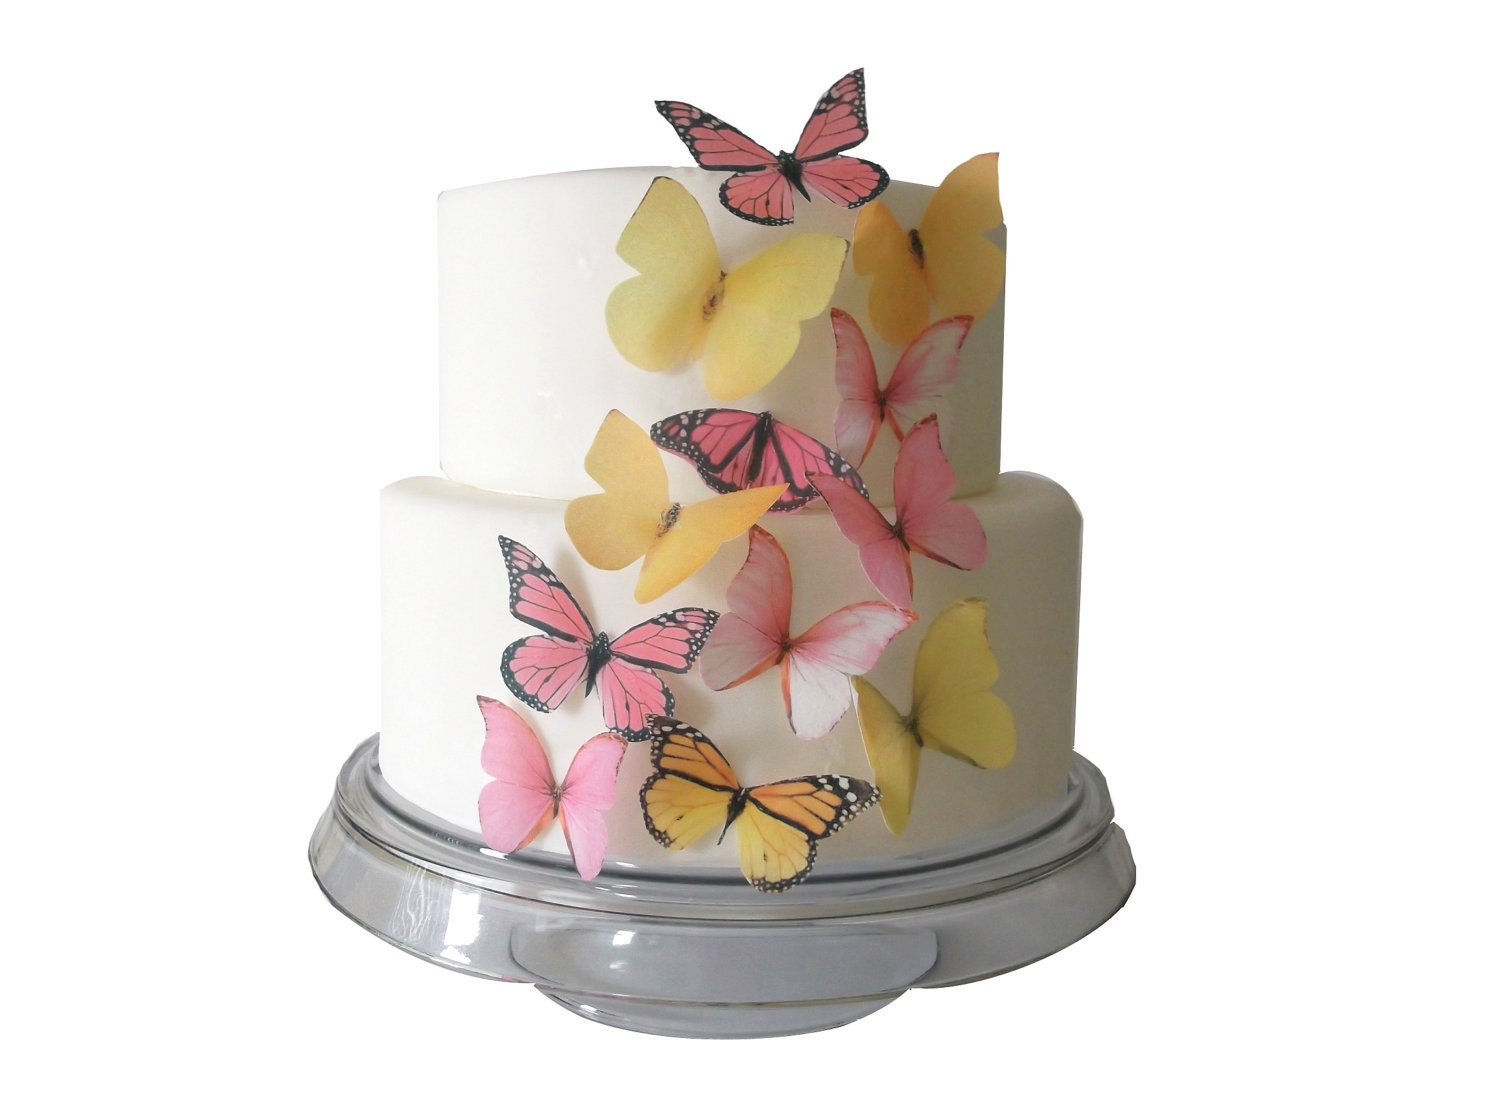 Easter Cake Edible Decorations : WAFER PAPER Edible Butterfly Cake Decorations - 12 Edible ...